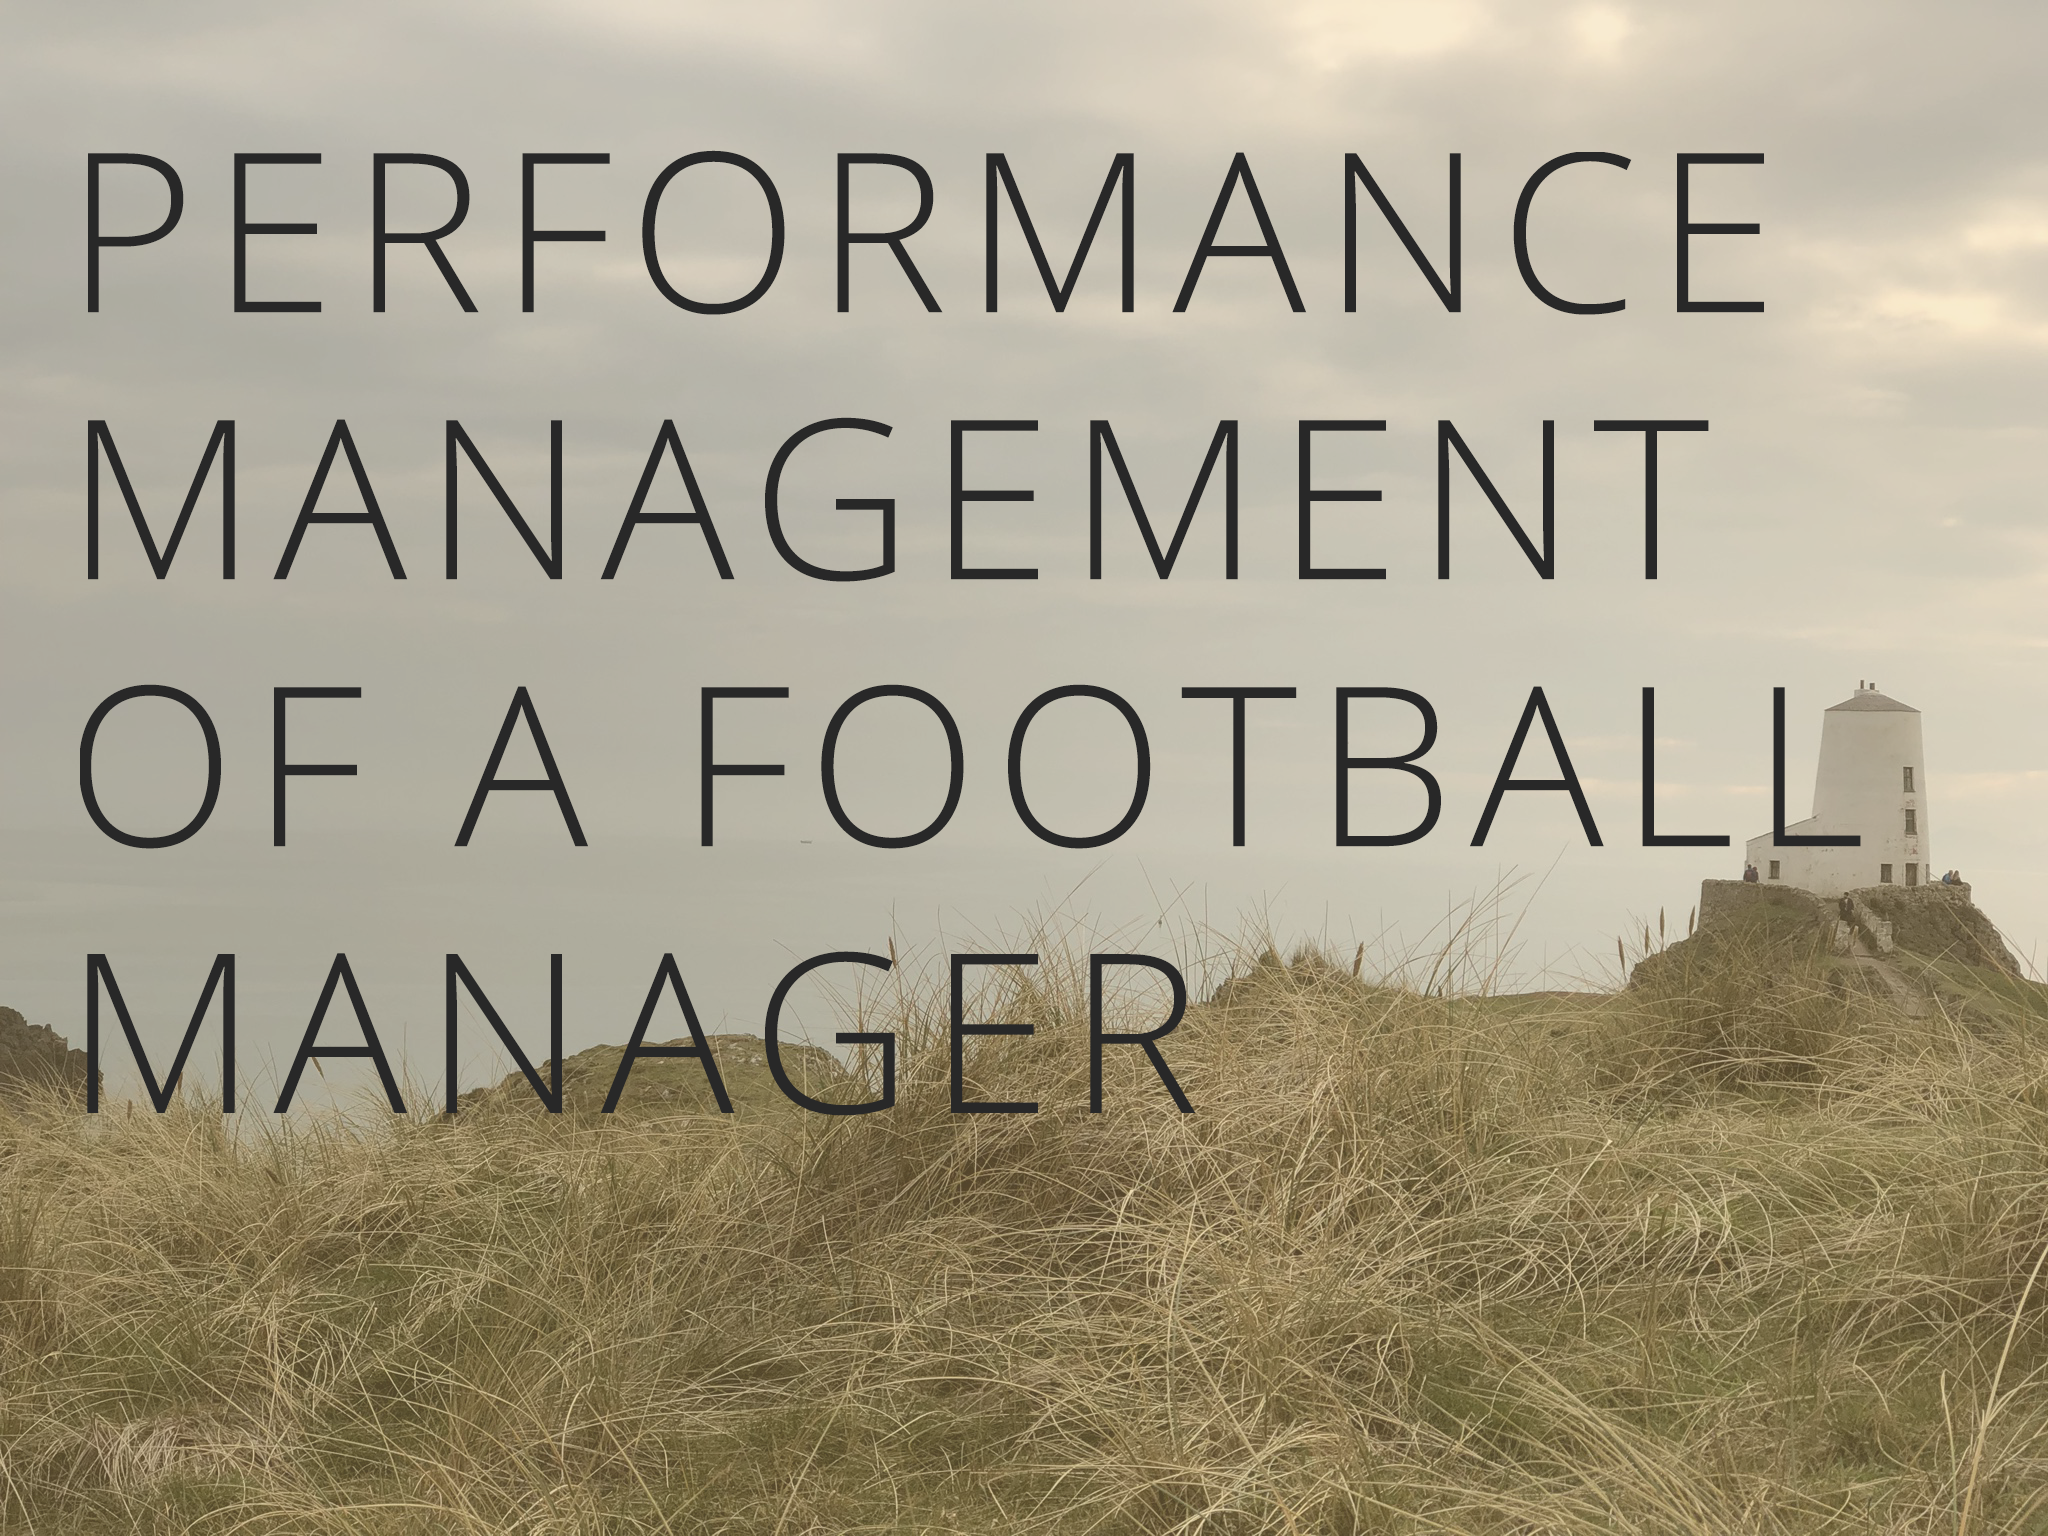 Performance Management of a Football Manager